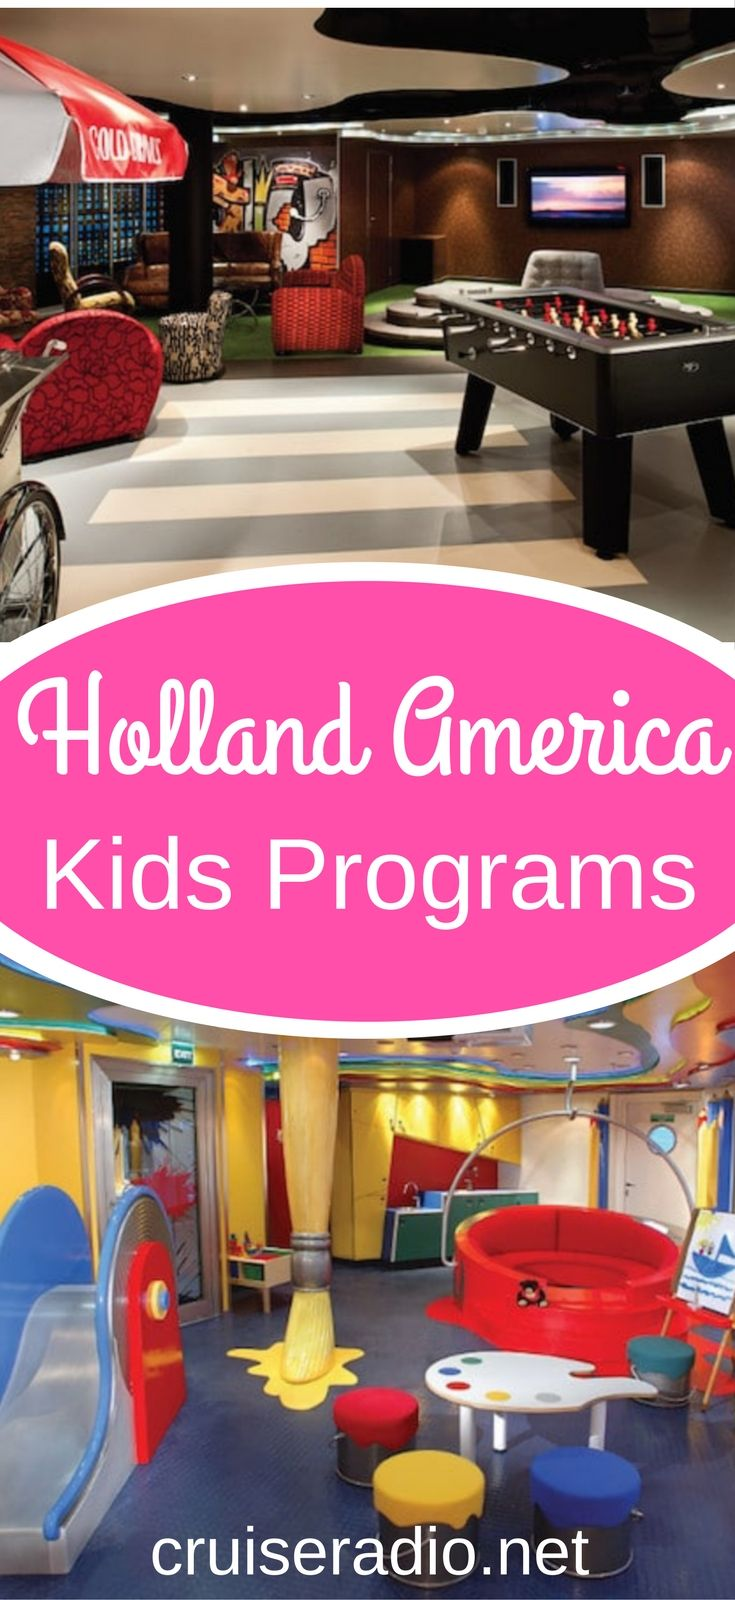 #hollandamerica holland america #hal cruise tips #cruising #travel #vacation travel tips #family family travel tips #wander